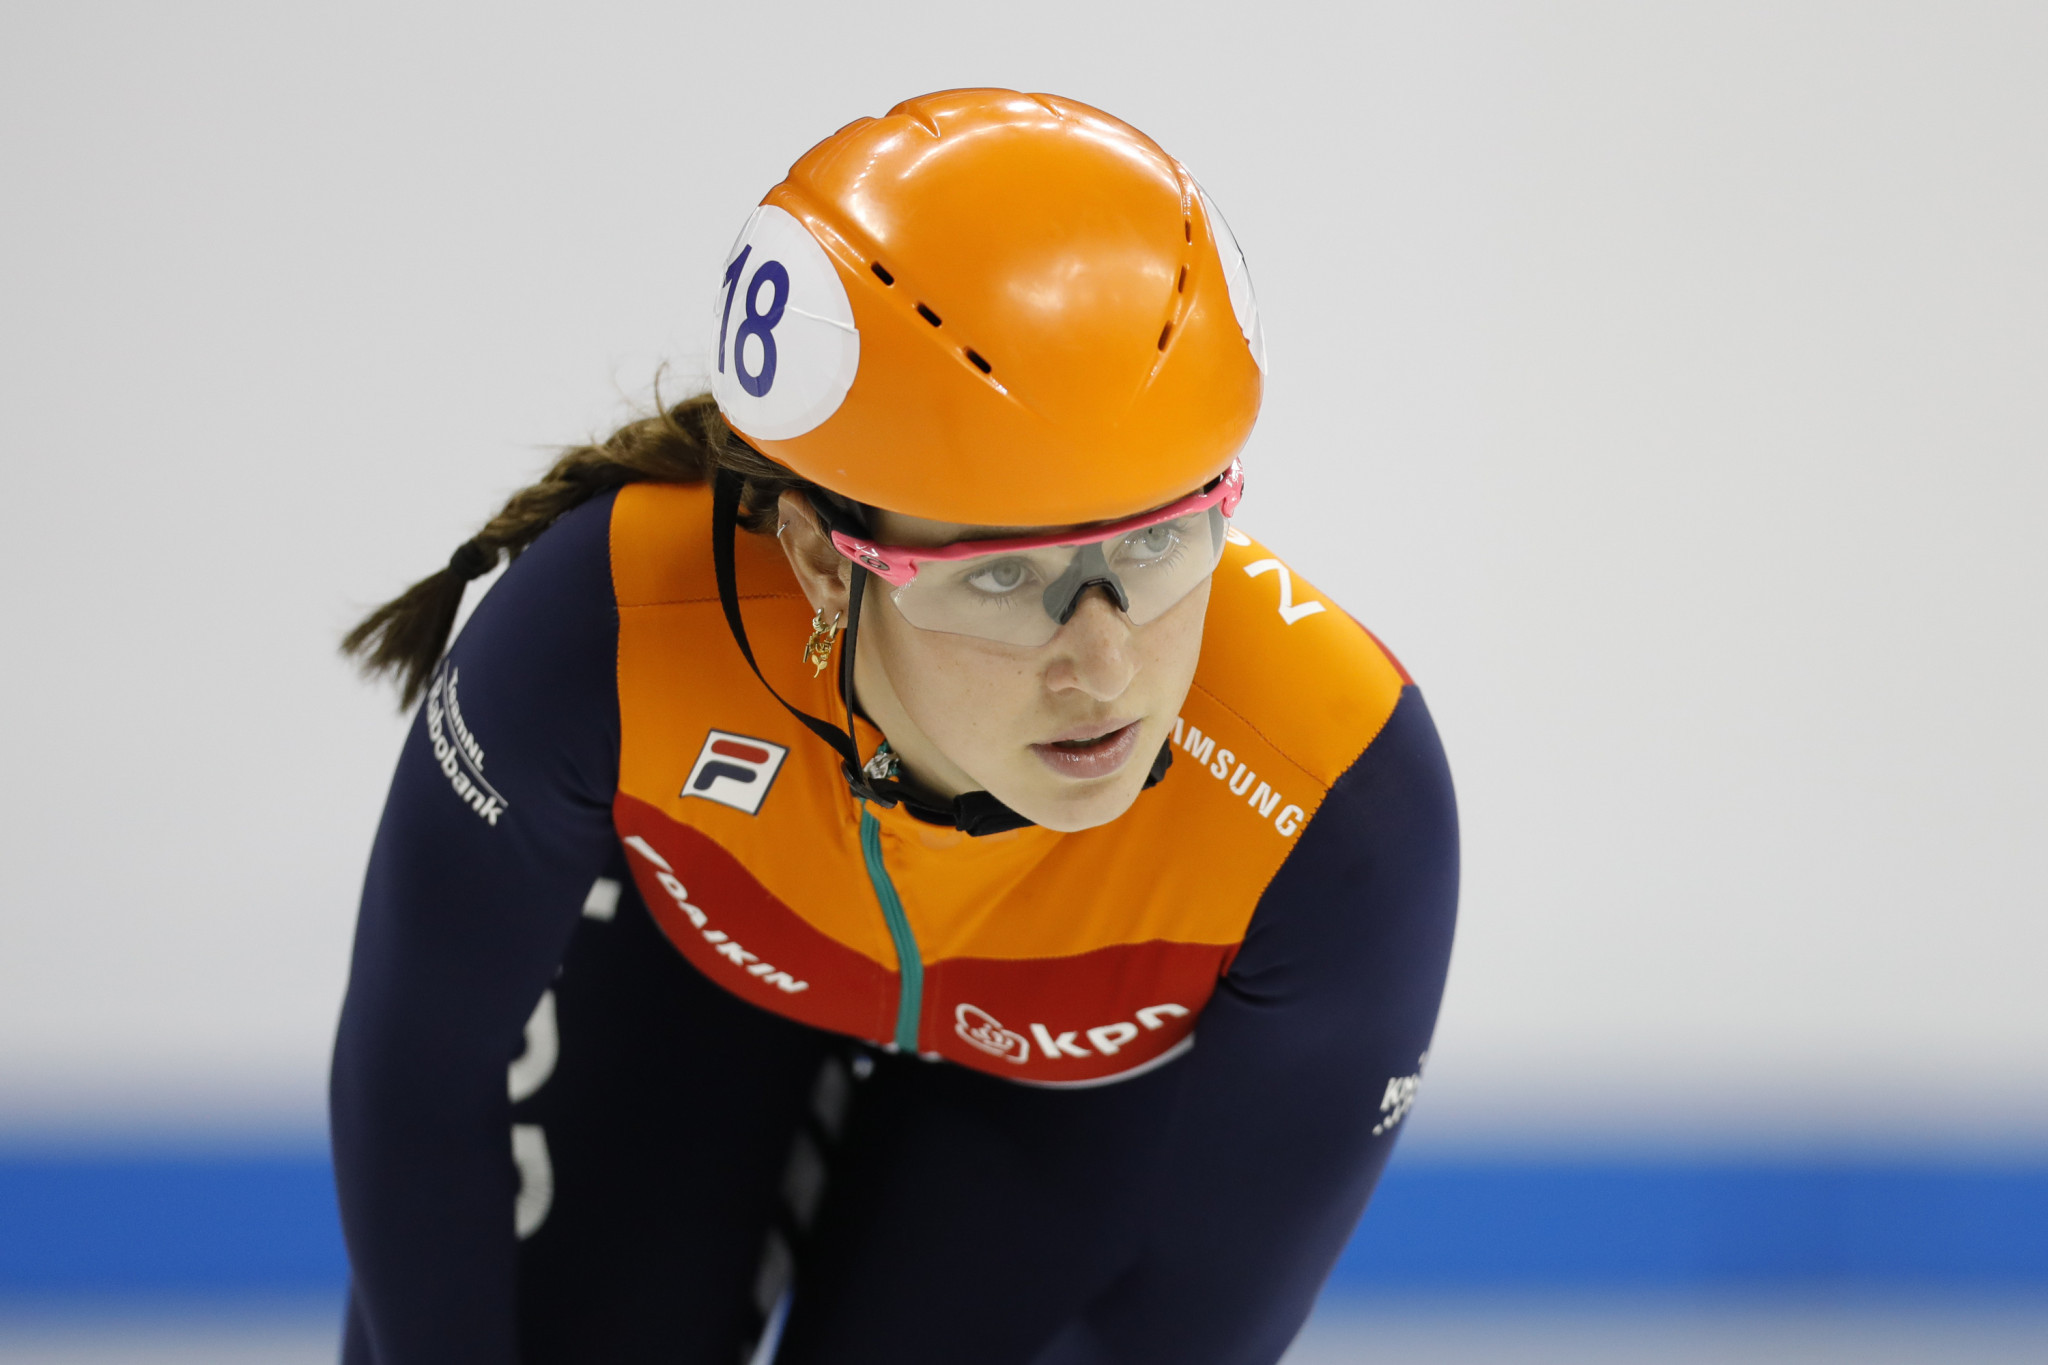 Schulting eyes ISU World Cup Short Track Speed Skating glory in Salt Lake City